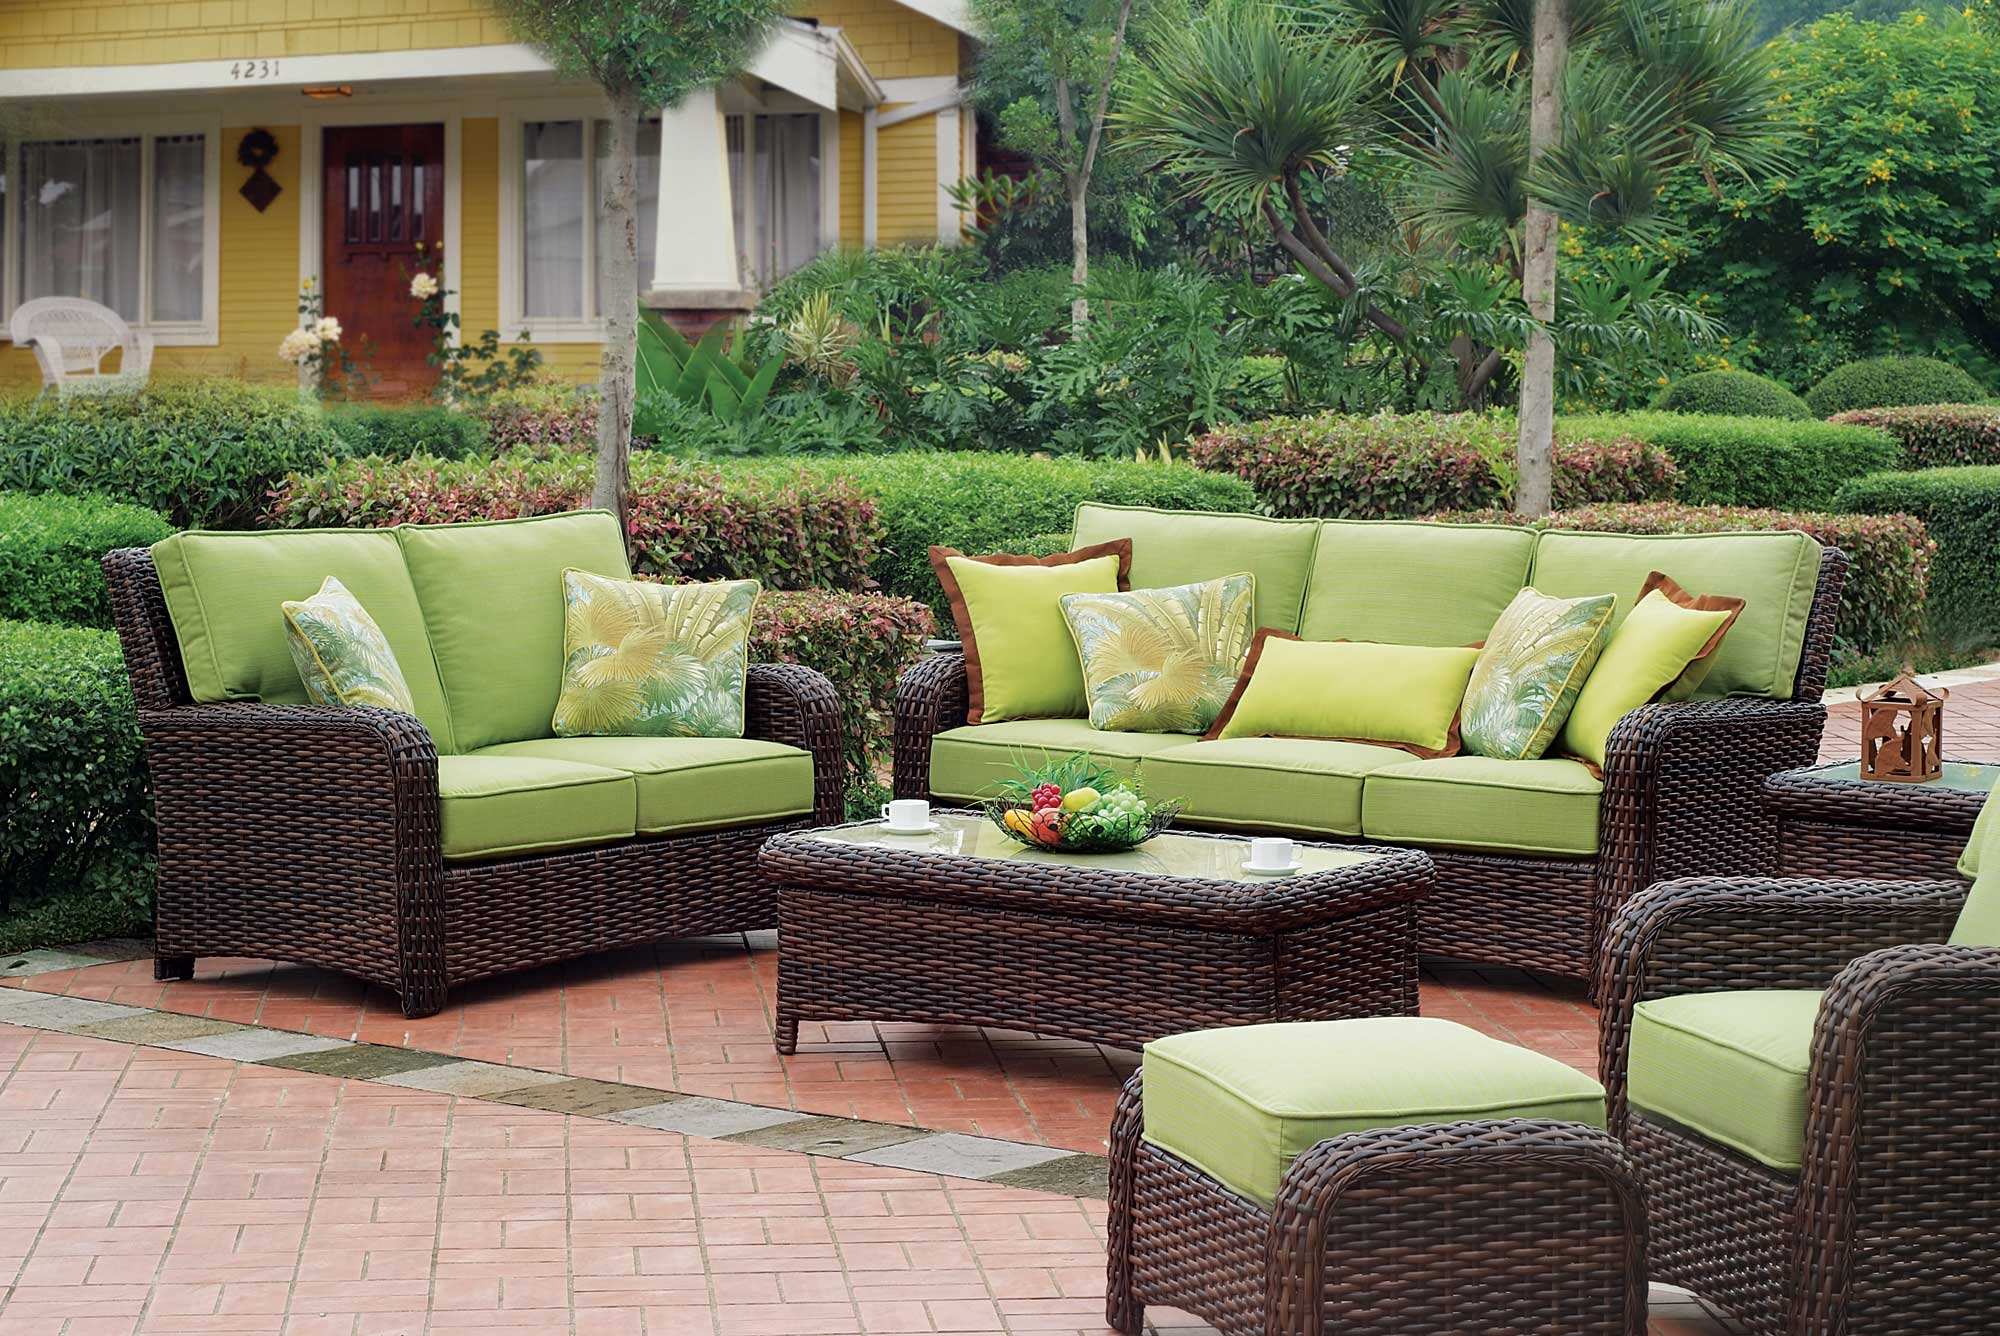 Outdoor Living Tips for Keeping Your Rattan Furniture Looking New  The Fashionable Housewife